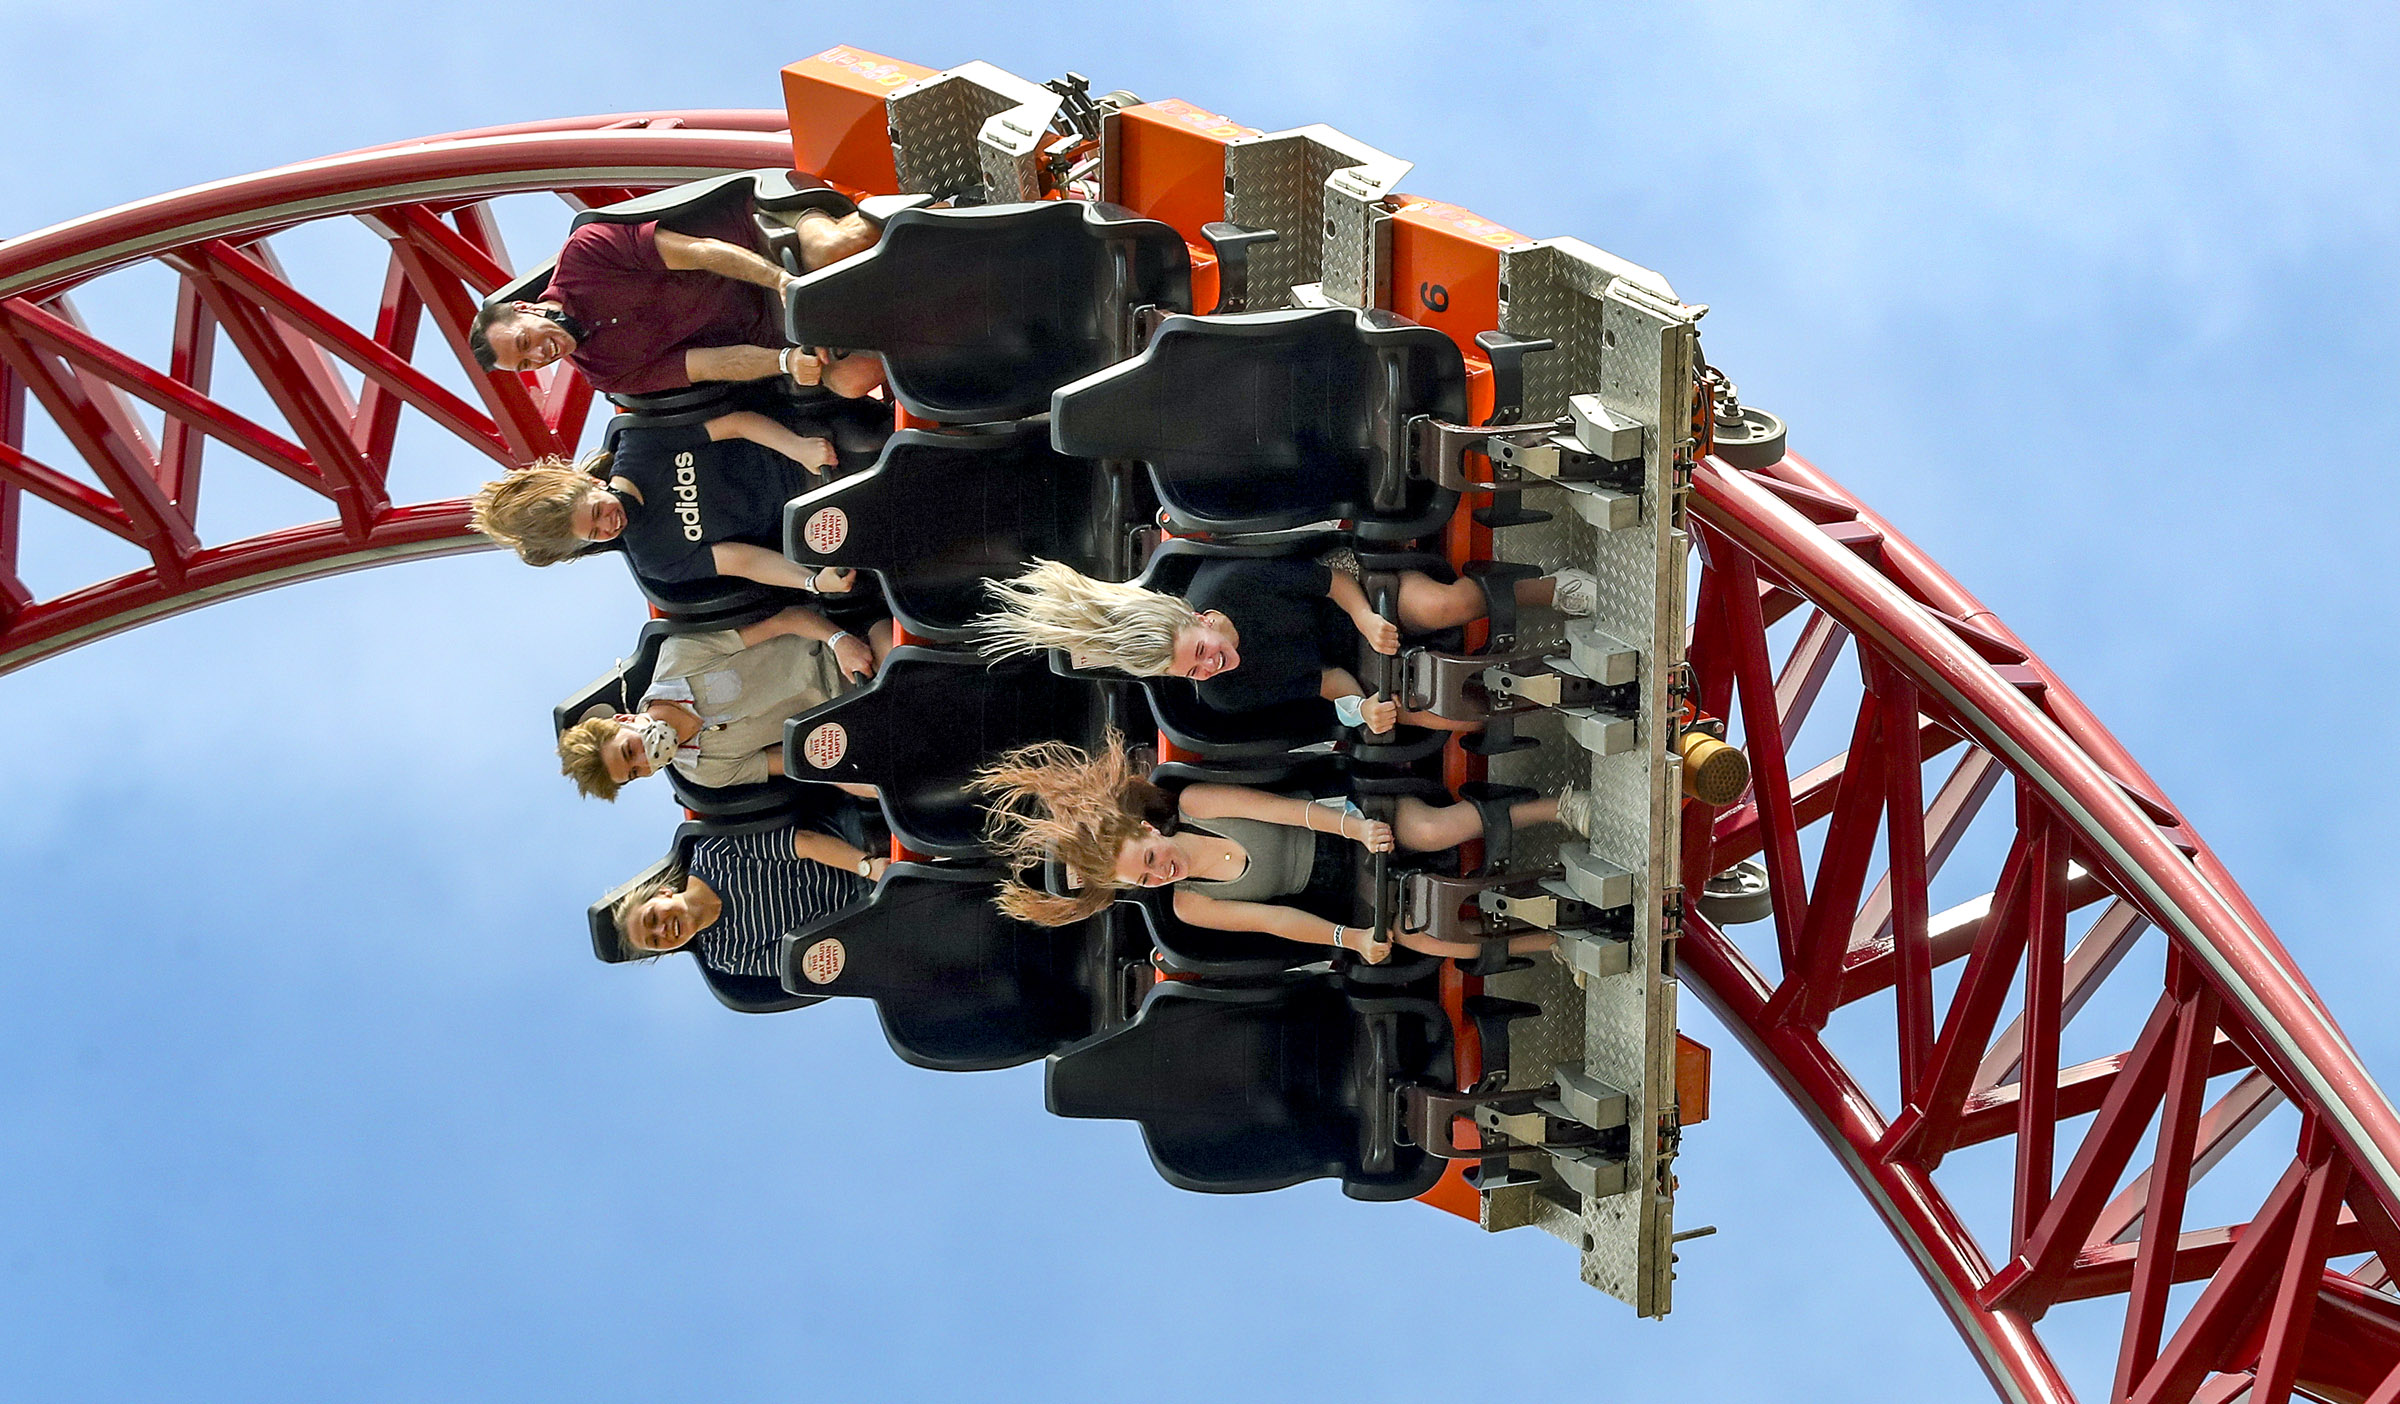 Guests scream with excitement as they ride the Cannibal at Lagoon in Farmington on Monday, June 15, 2020.